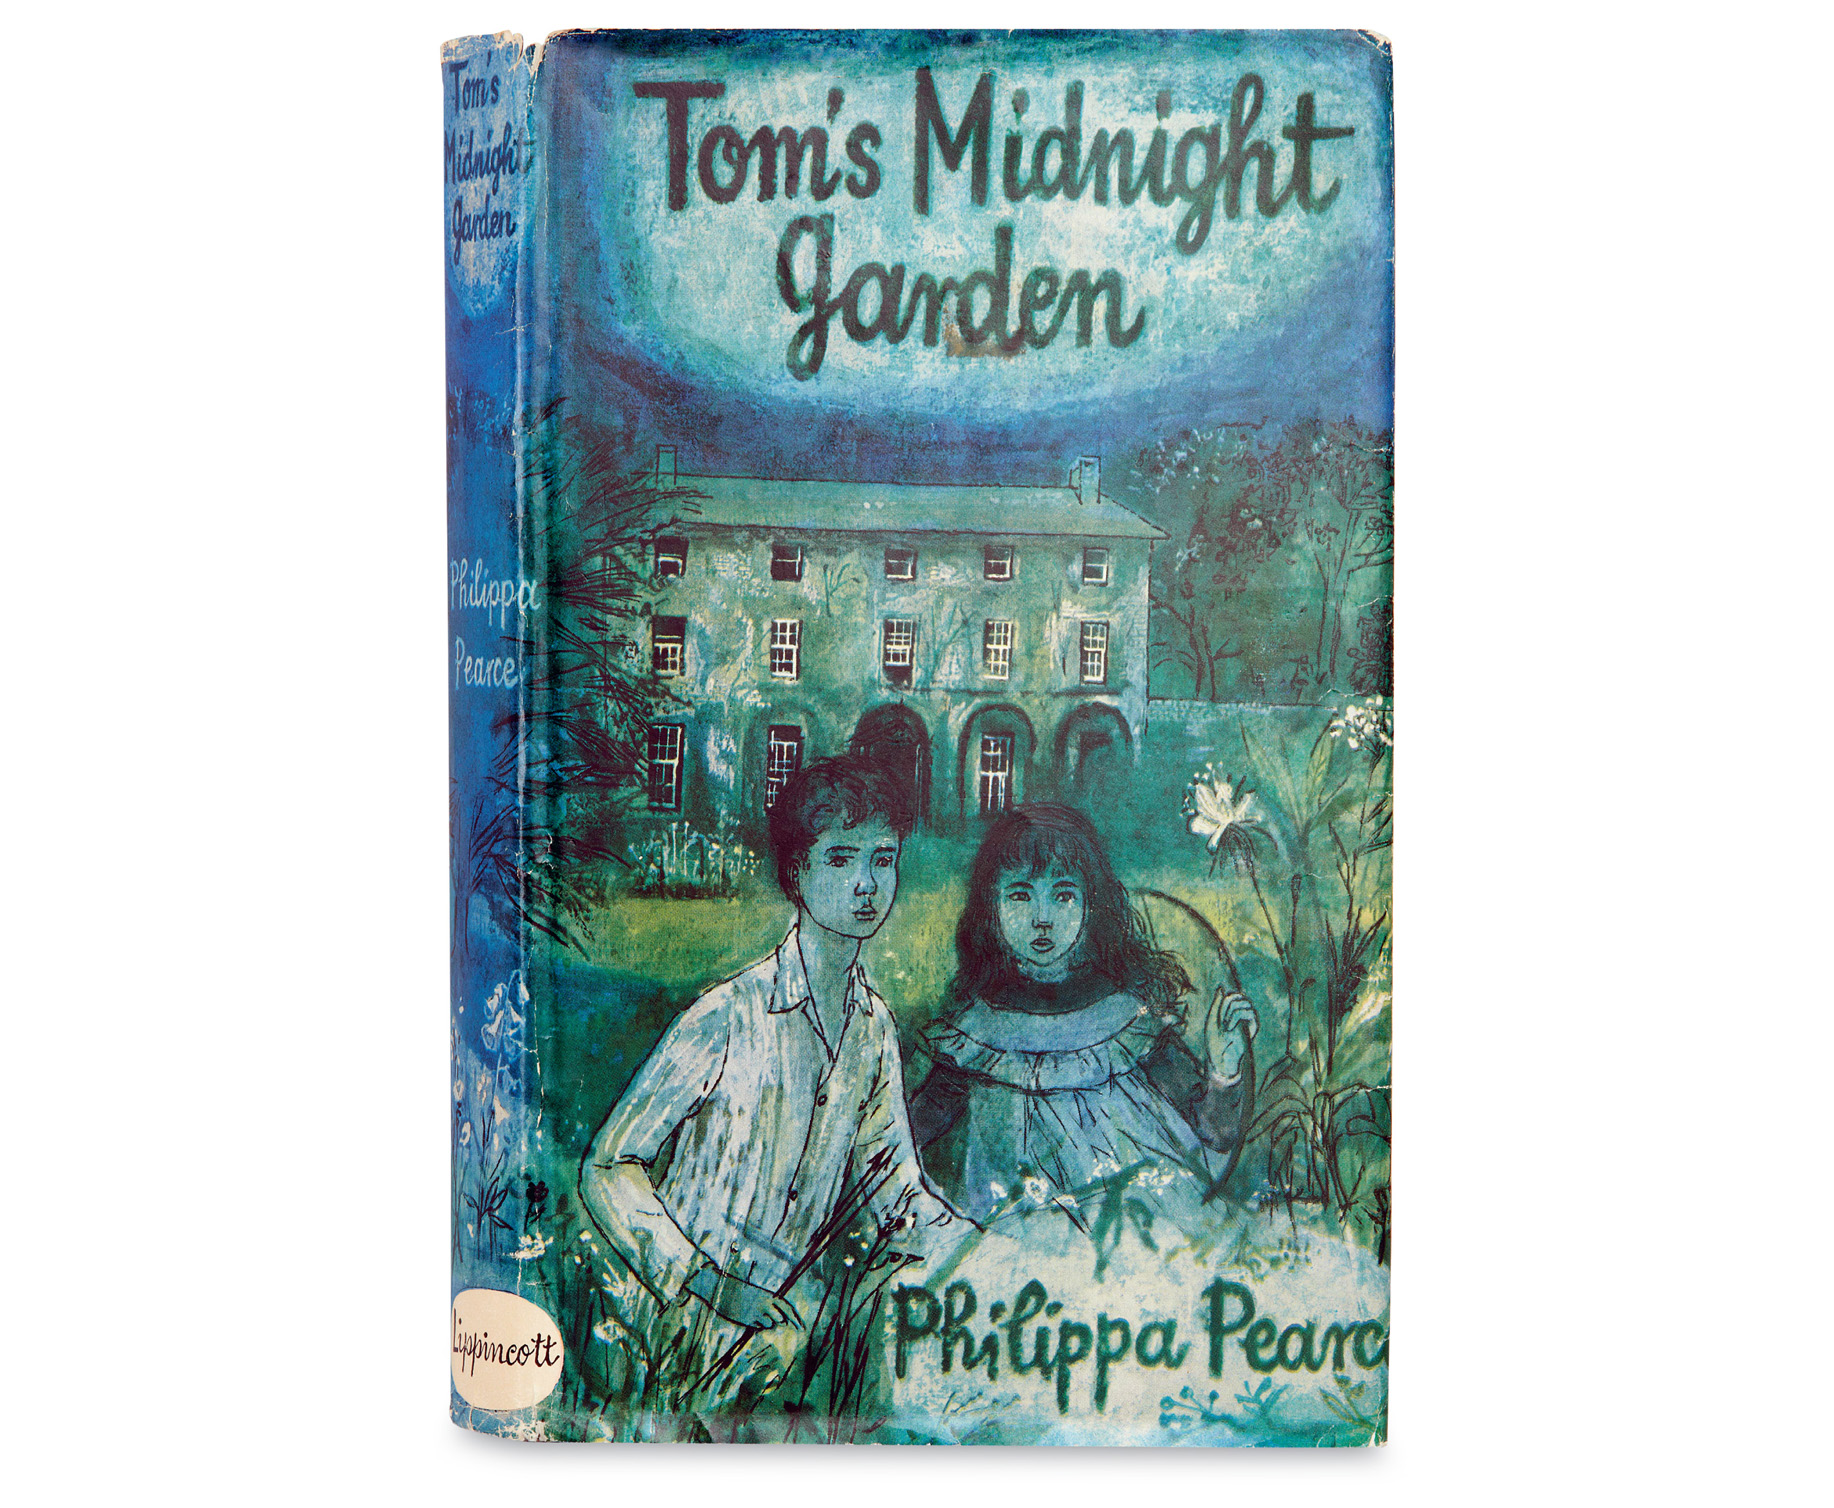 toms midnight garden by philippa pearce essay Phillippa pearce's classic tale of tom's midnight garden is a great inspiration for teaching and learning explore our long list of classroom activities and try some yourself.